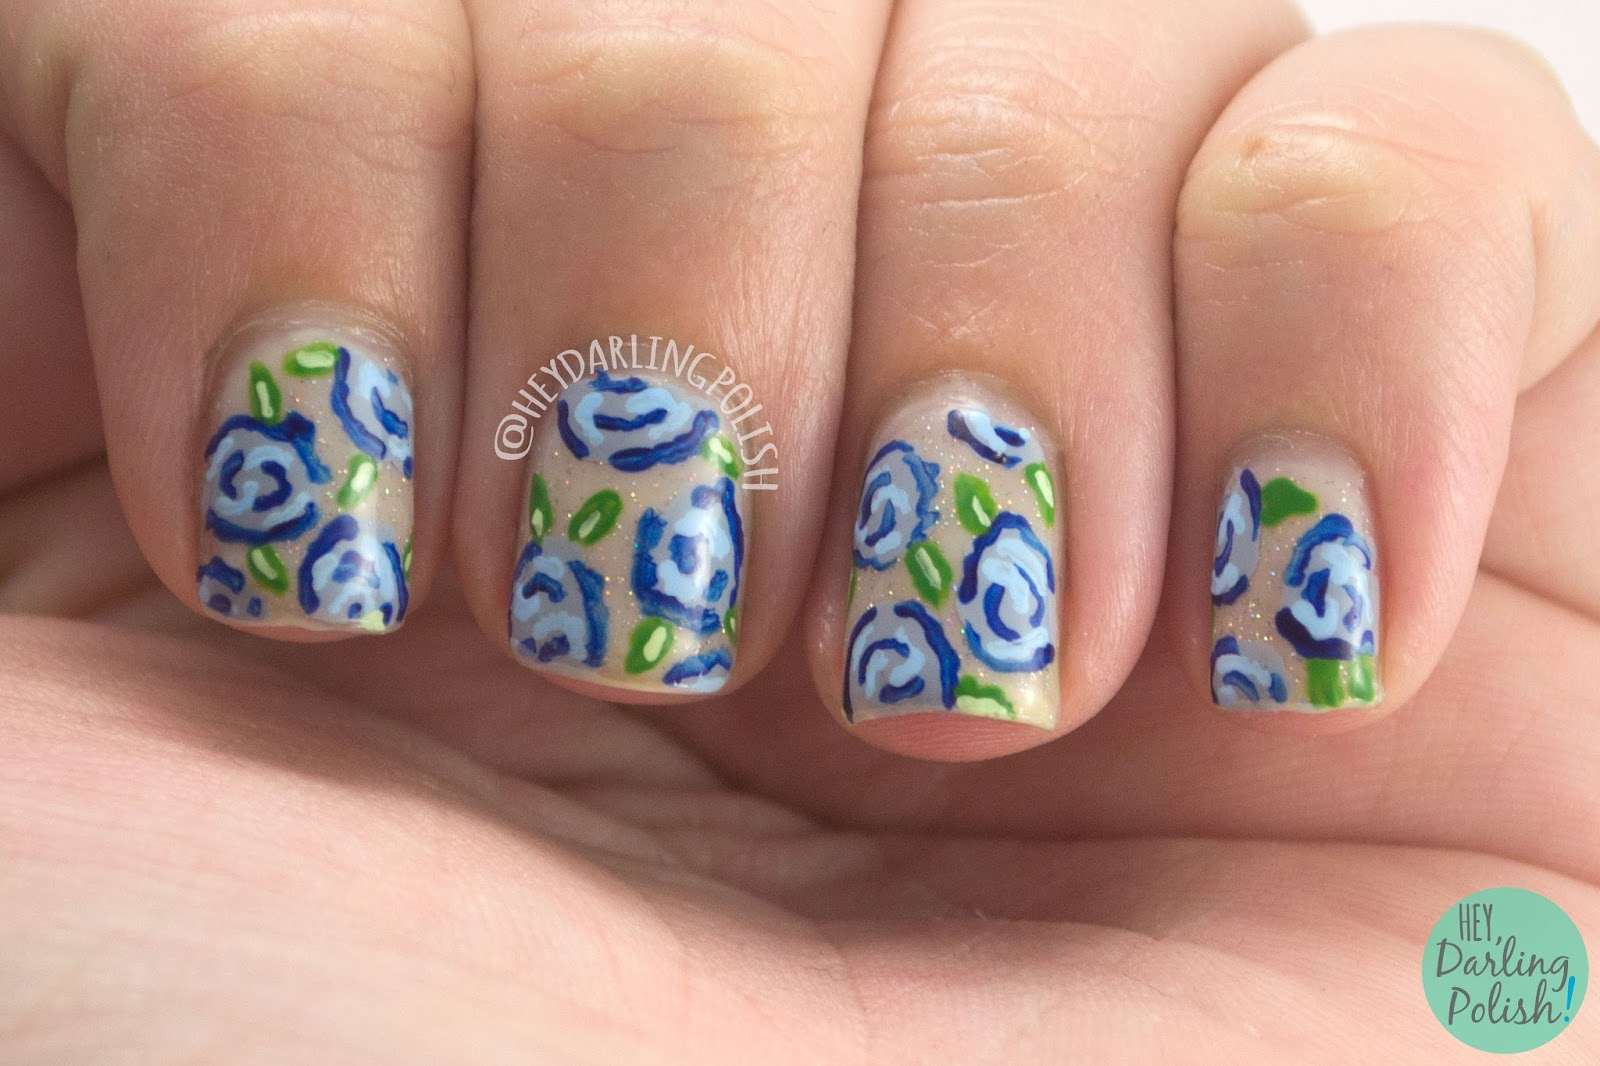 31dc2014, nails, nail art, nail polish, roses, flowers, rose nail art, hey darling polish, 31 day challenge,